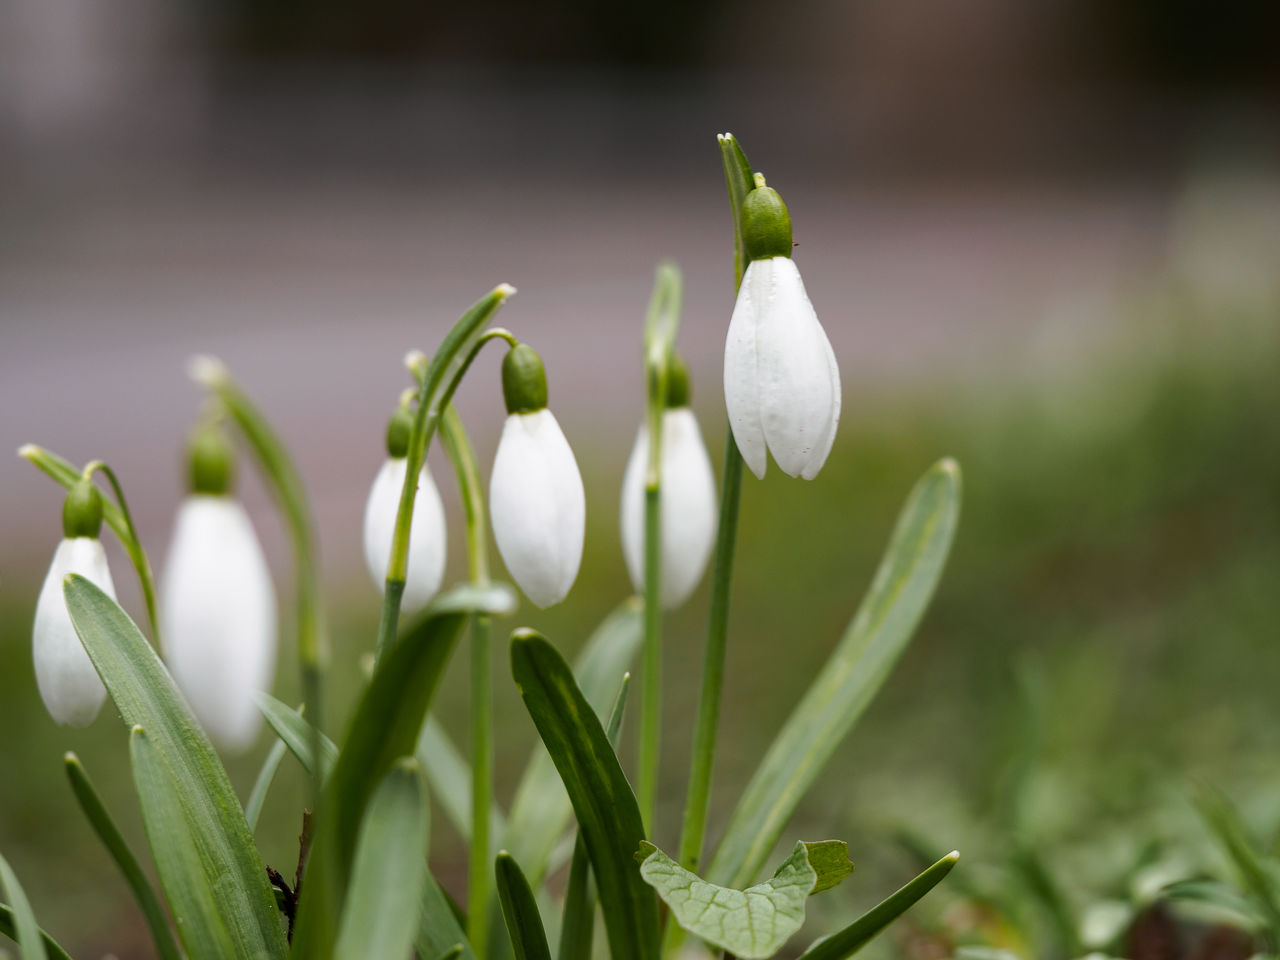 growth, plant, flower, beauty in nature, flowering plant, freshness, vulnerability, snowdrop, fragility, close-up, petal, white color, green color, focus on foreground, nature, no people, day, inflorescence, selective focus, flower head, outdoors